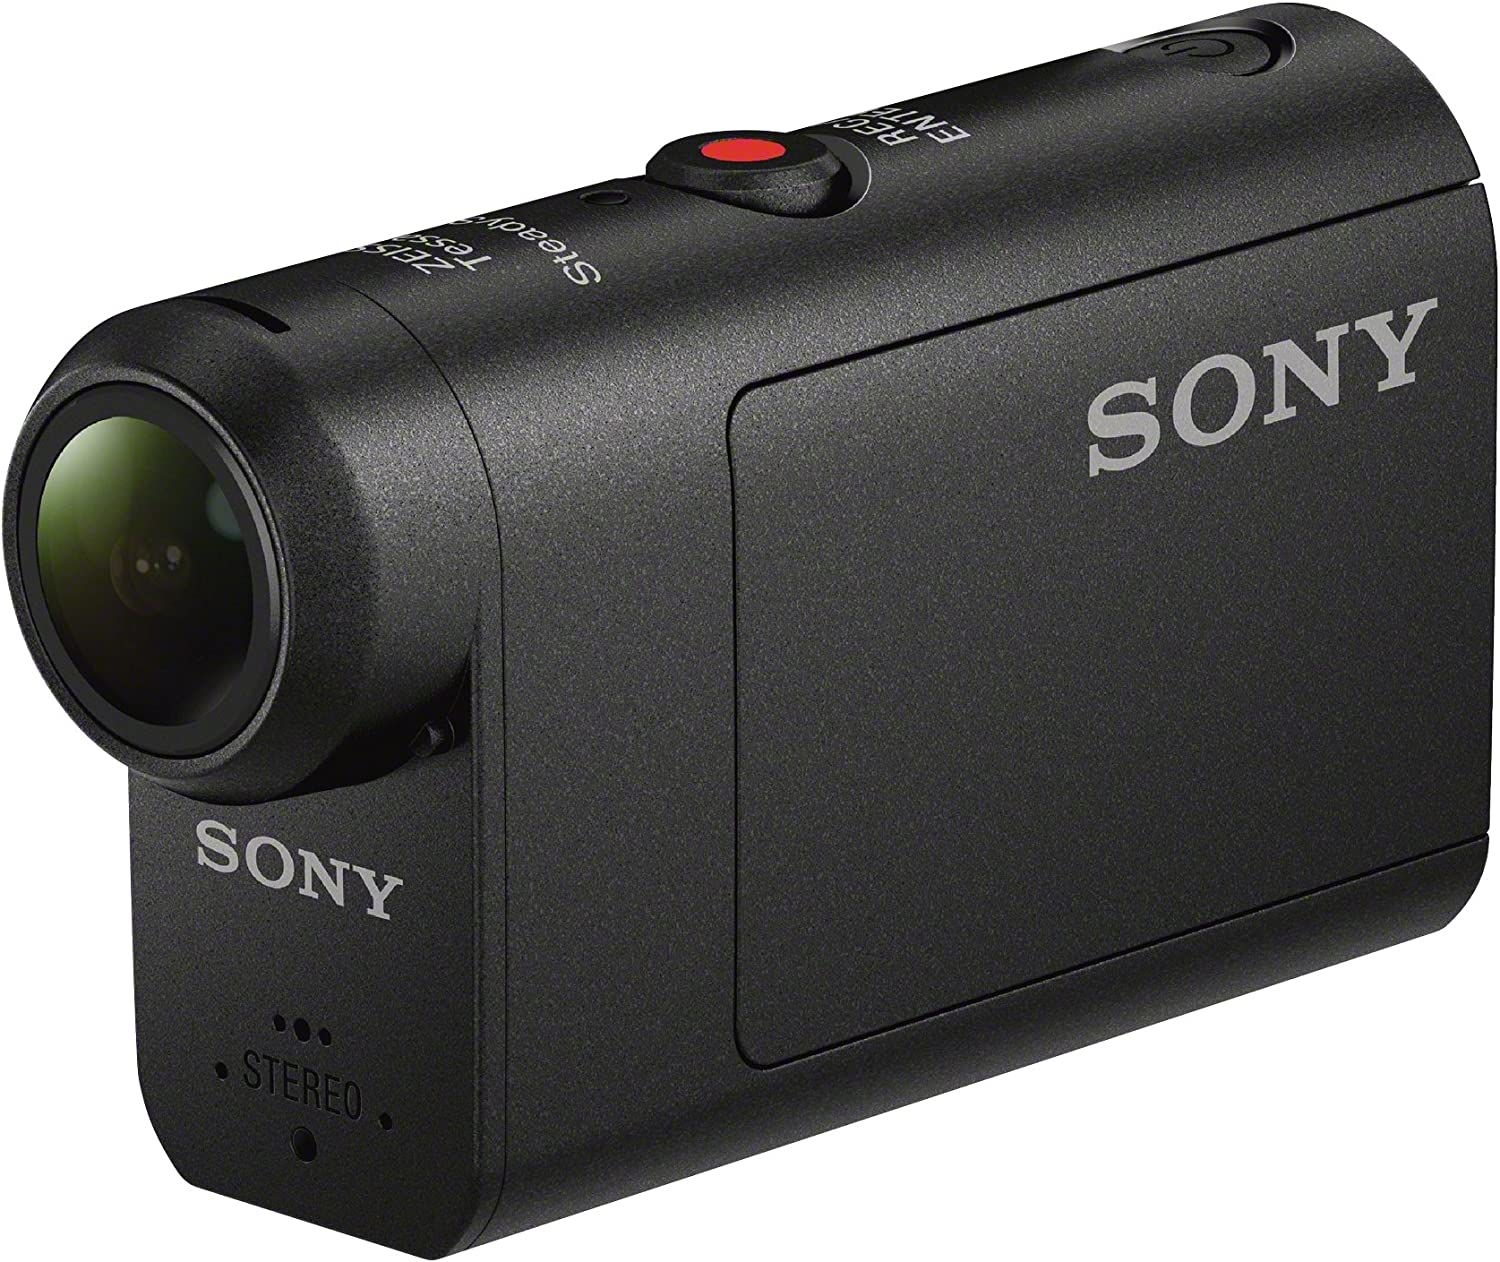 Sony Hdr As50 Action Cam Schwarz Kamera